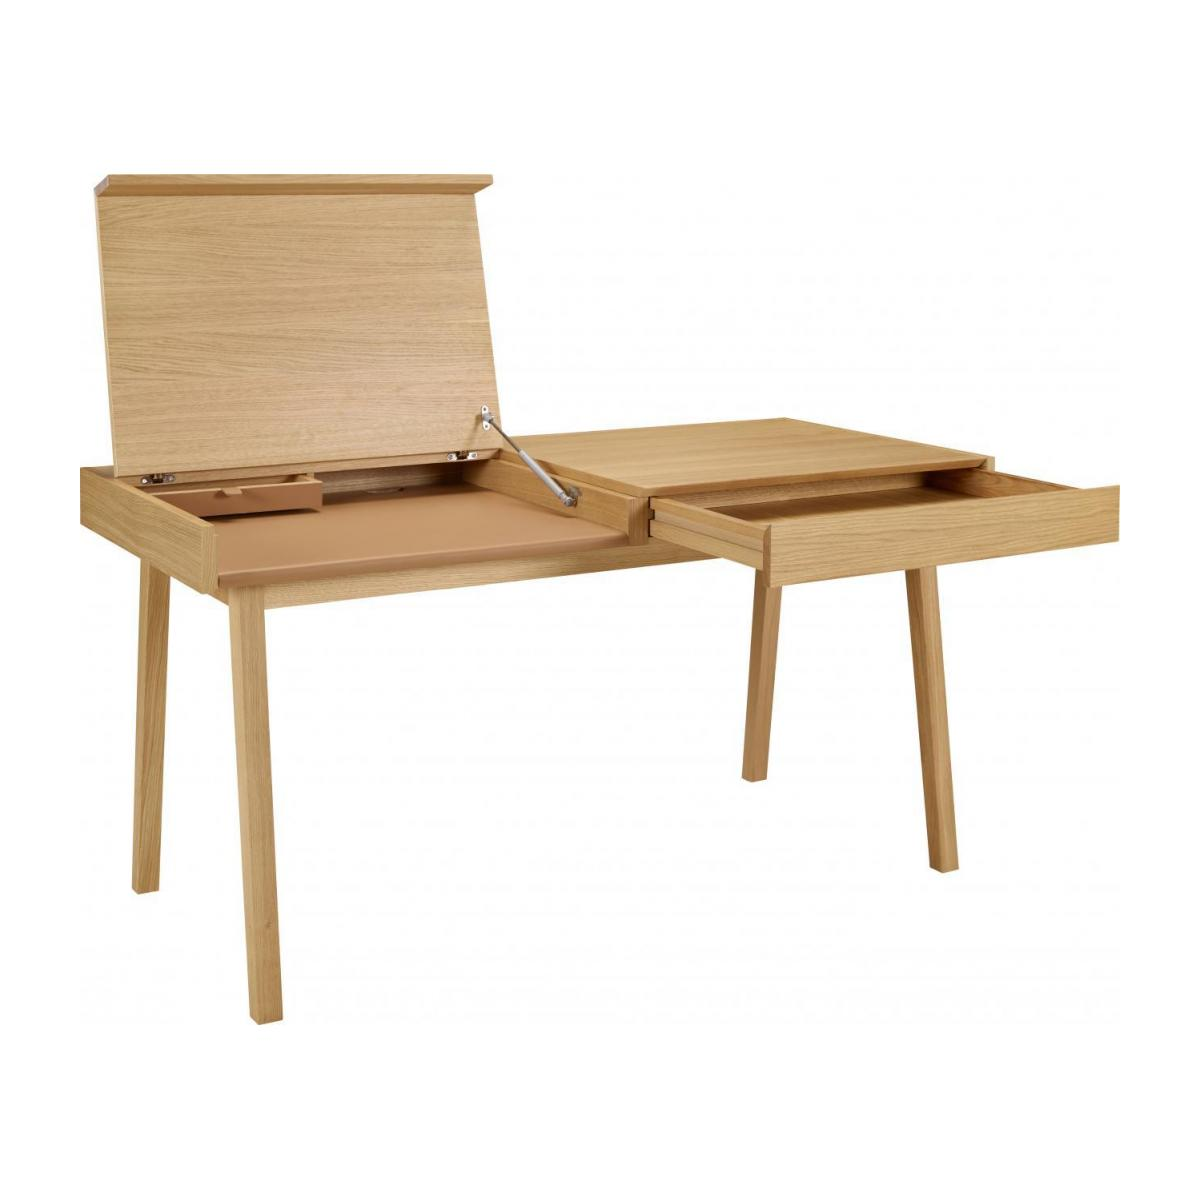 Big oak desk n°3